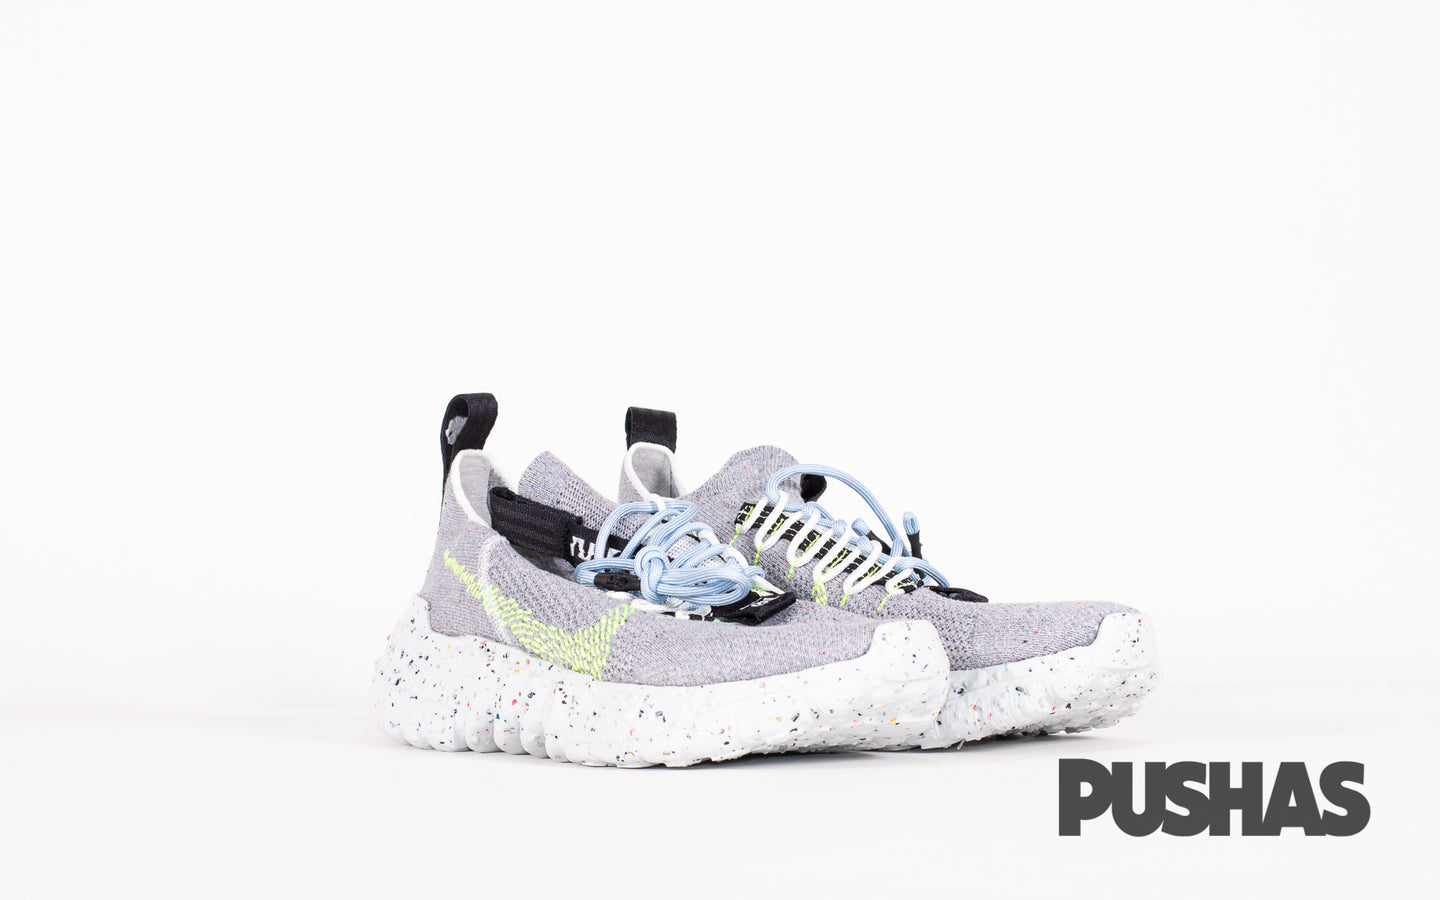 pushas-nike-Space-Hippie-01-Grey-Volt